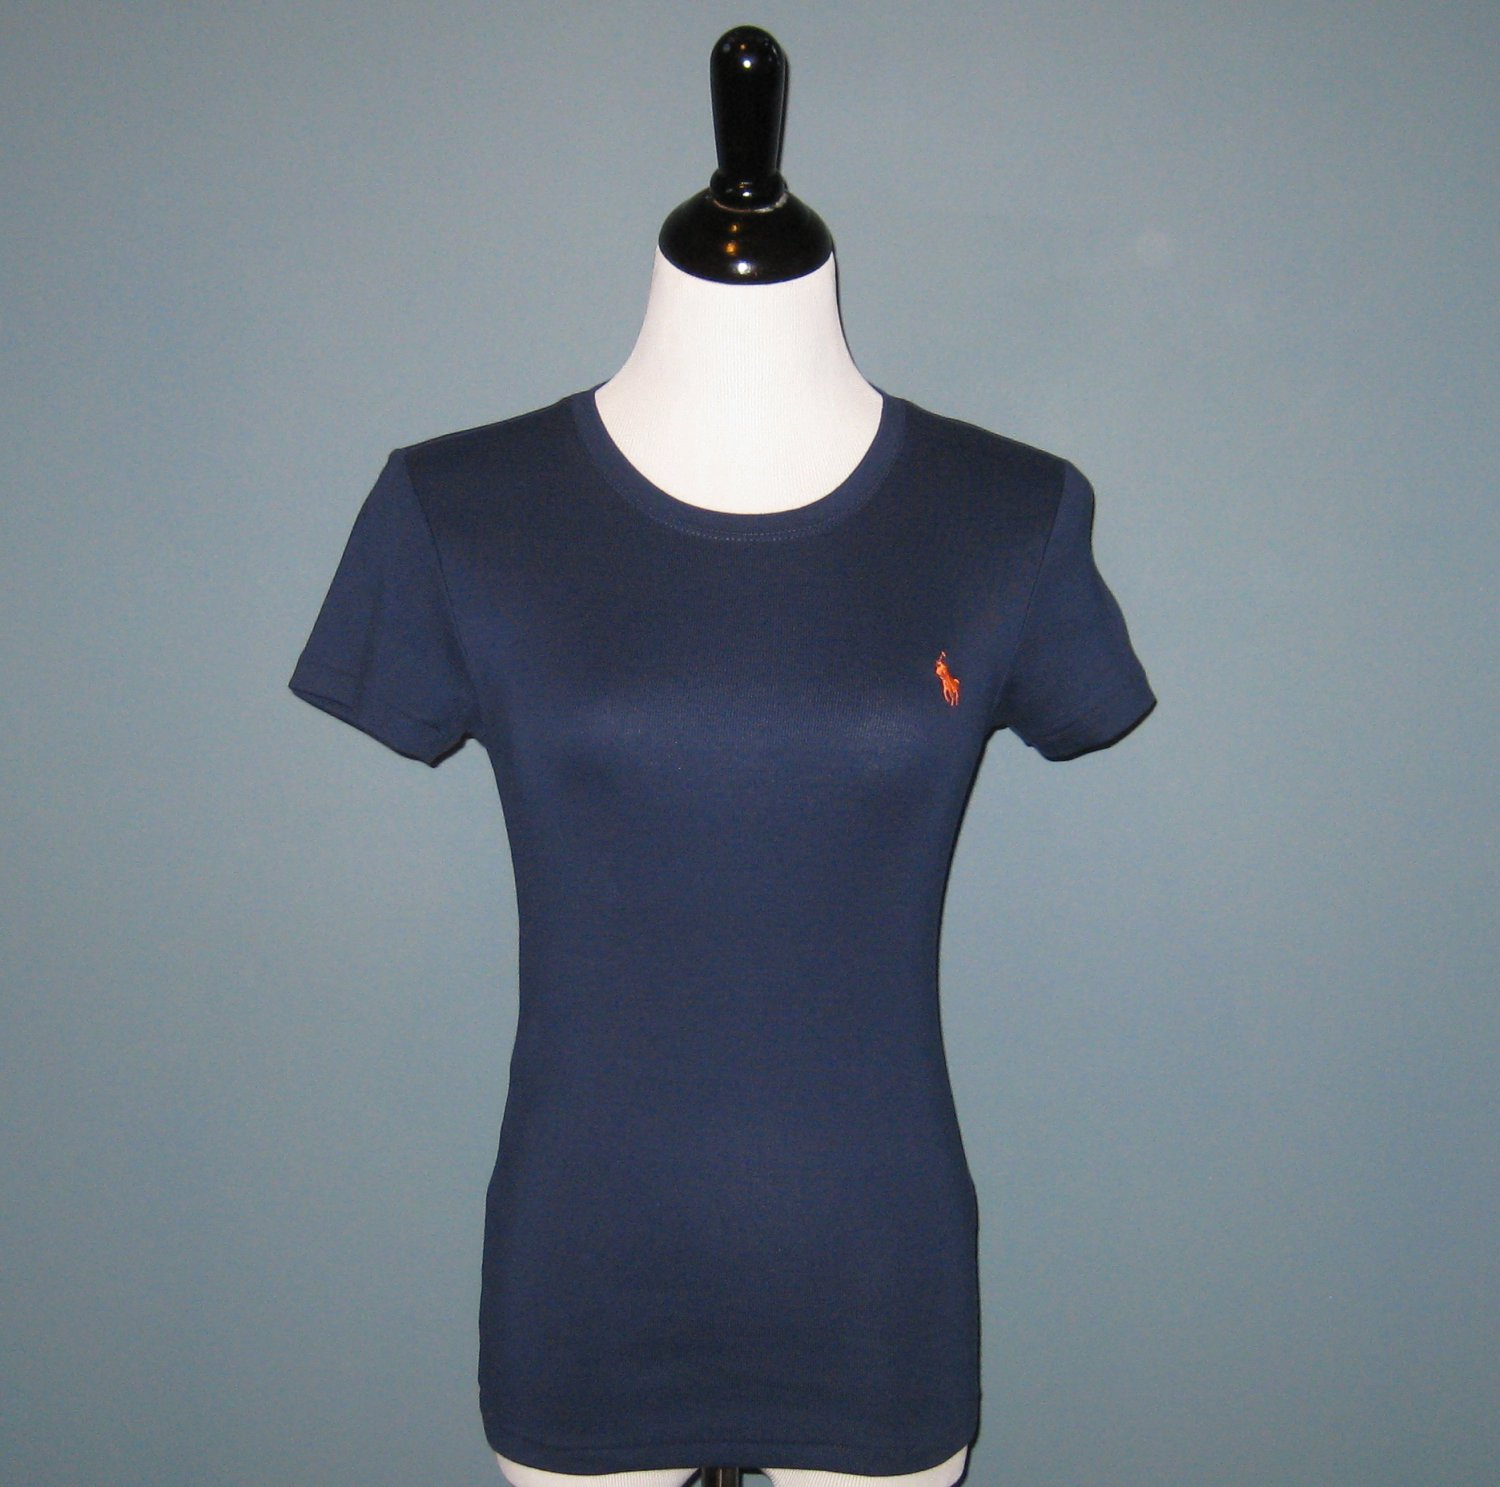 NWT Ralph Lauren Sport Navy Blue Cotton Crew Neck S/S Tee Shirt T-shirt Top - M